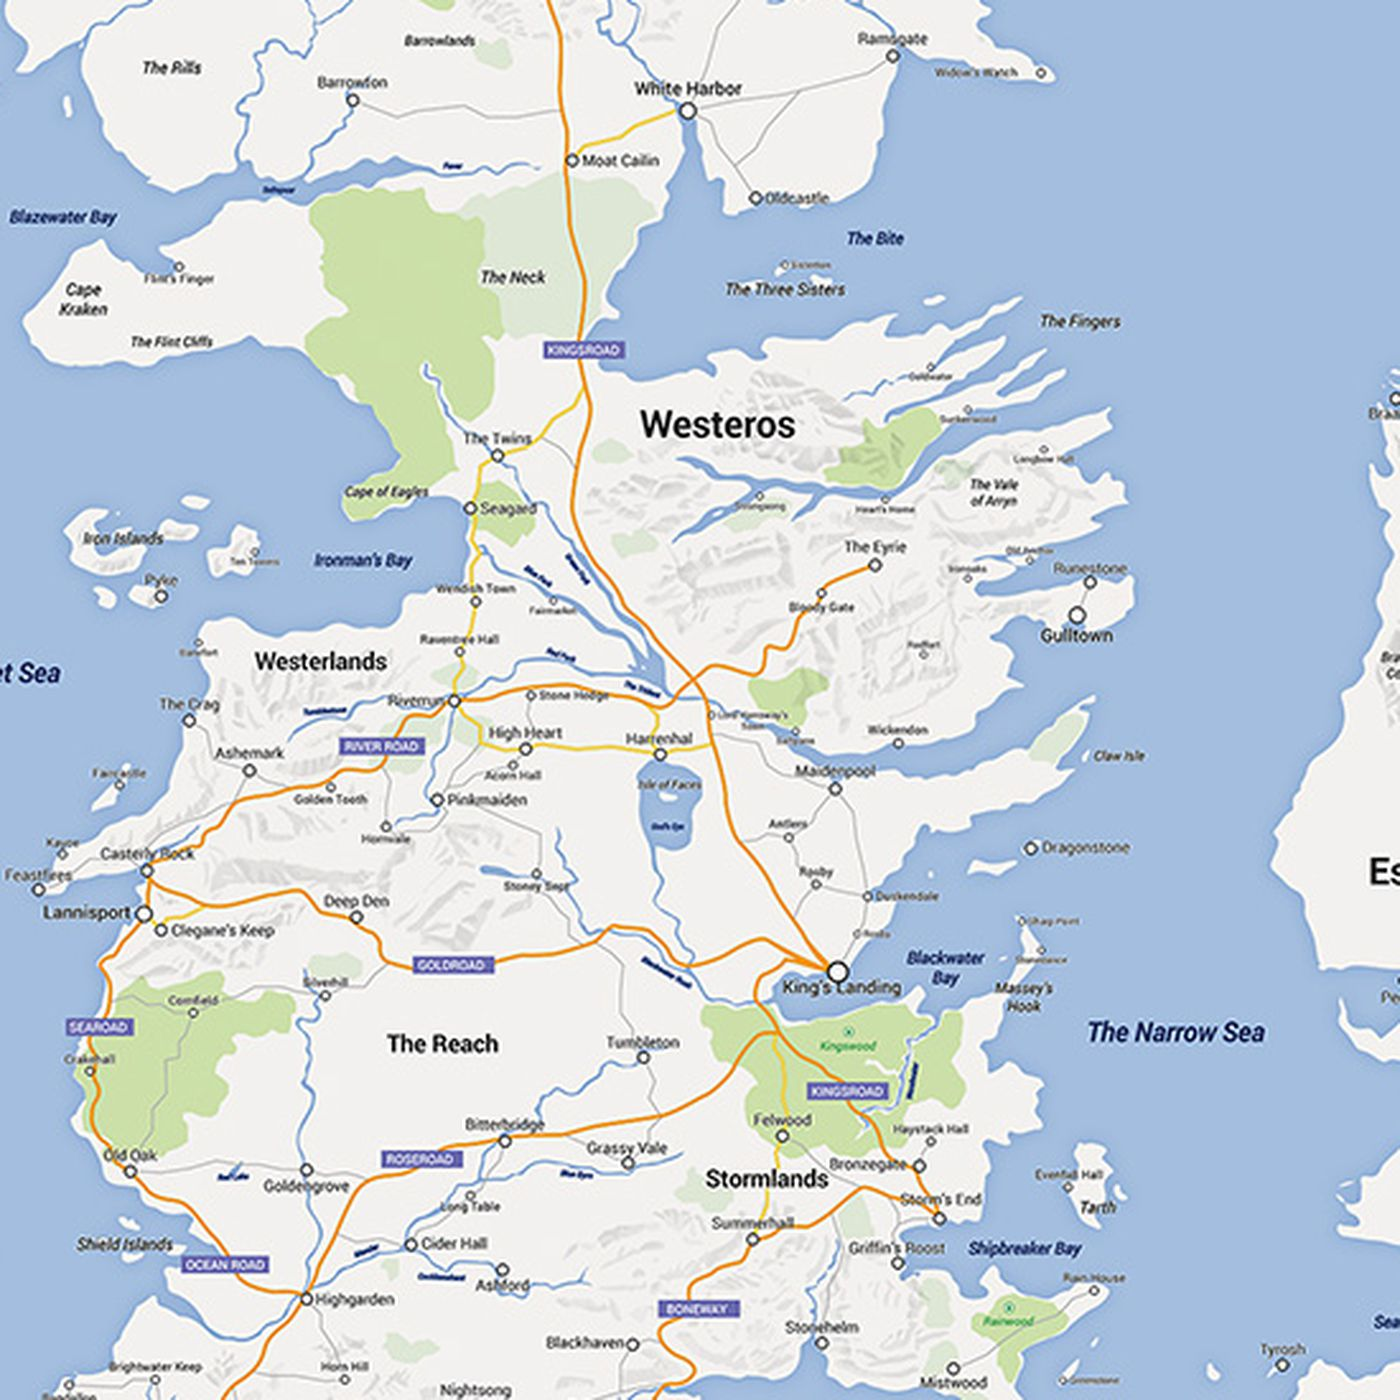 Someone made Game of Thrones into a Google map, and it's ... on walking dead map, winterfell map, a game of thrones, fire and blood, justified map, a clash of kings, narnia map, a storm of swords, gendry map, themes in a song of ice and fire, got map, jericho map, the prince of winterfell, downton abbey map, lord snow, the kingsroad, works based on a song of ice and fire, dallas map, a game of thrones: genesis, clash of kings map, sons of anarchy, camelot map, qarth map, world map, bloodline map, a storm of swords map, tales of dunk and egg, game of thrones - season 2, a golden crown, star trek map, spooksville map, guild wars 2 map, game of thrones - season 1, a game of thrones collectible card game, jersey shore map, the pointy end, valyria map, winter is coming,